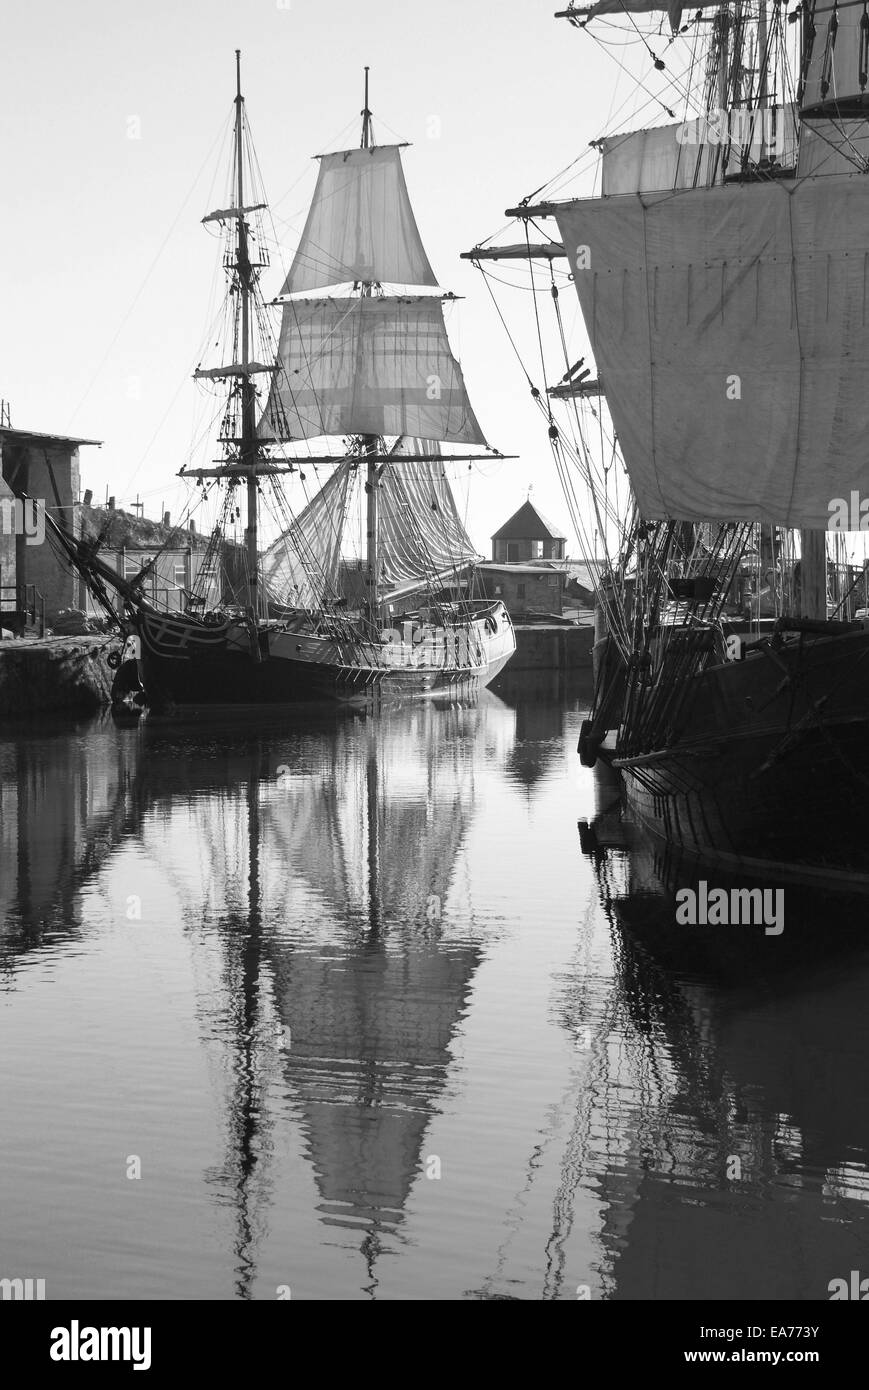 Tall ships in Charlestown Harbour - Stock Image